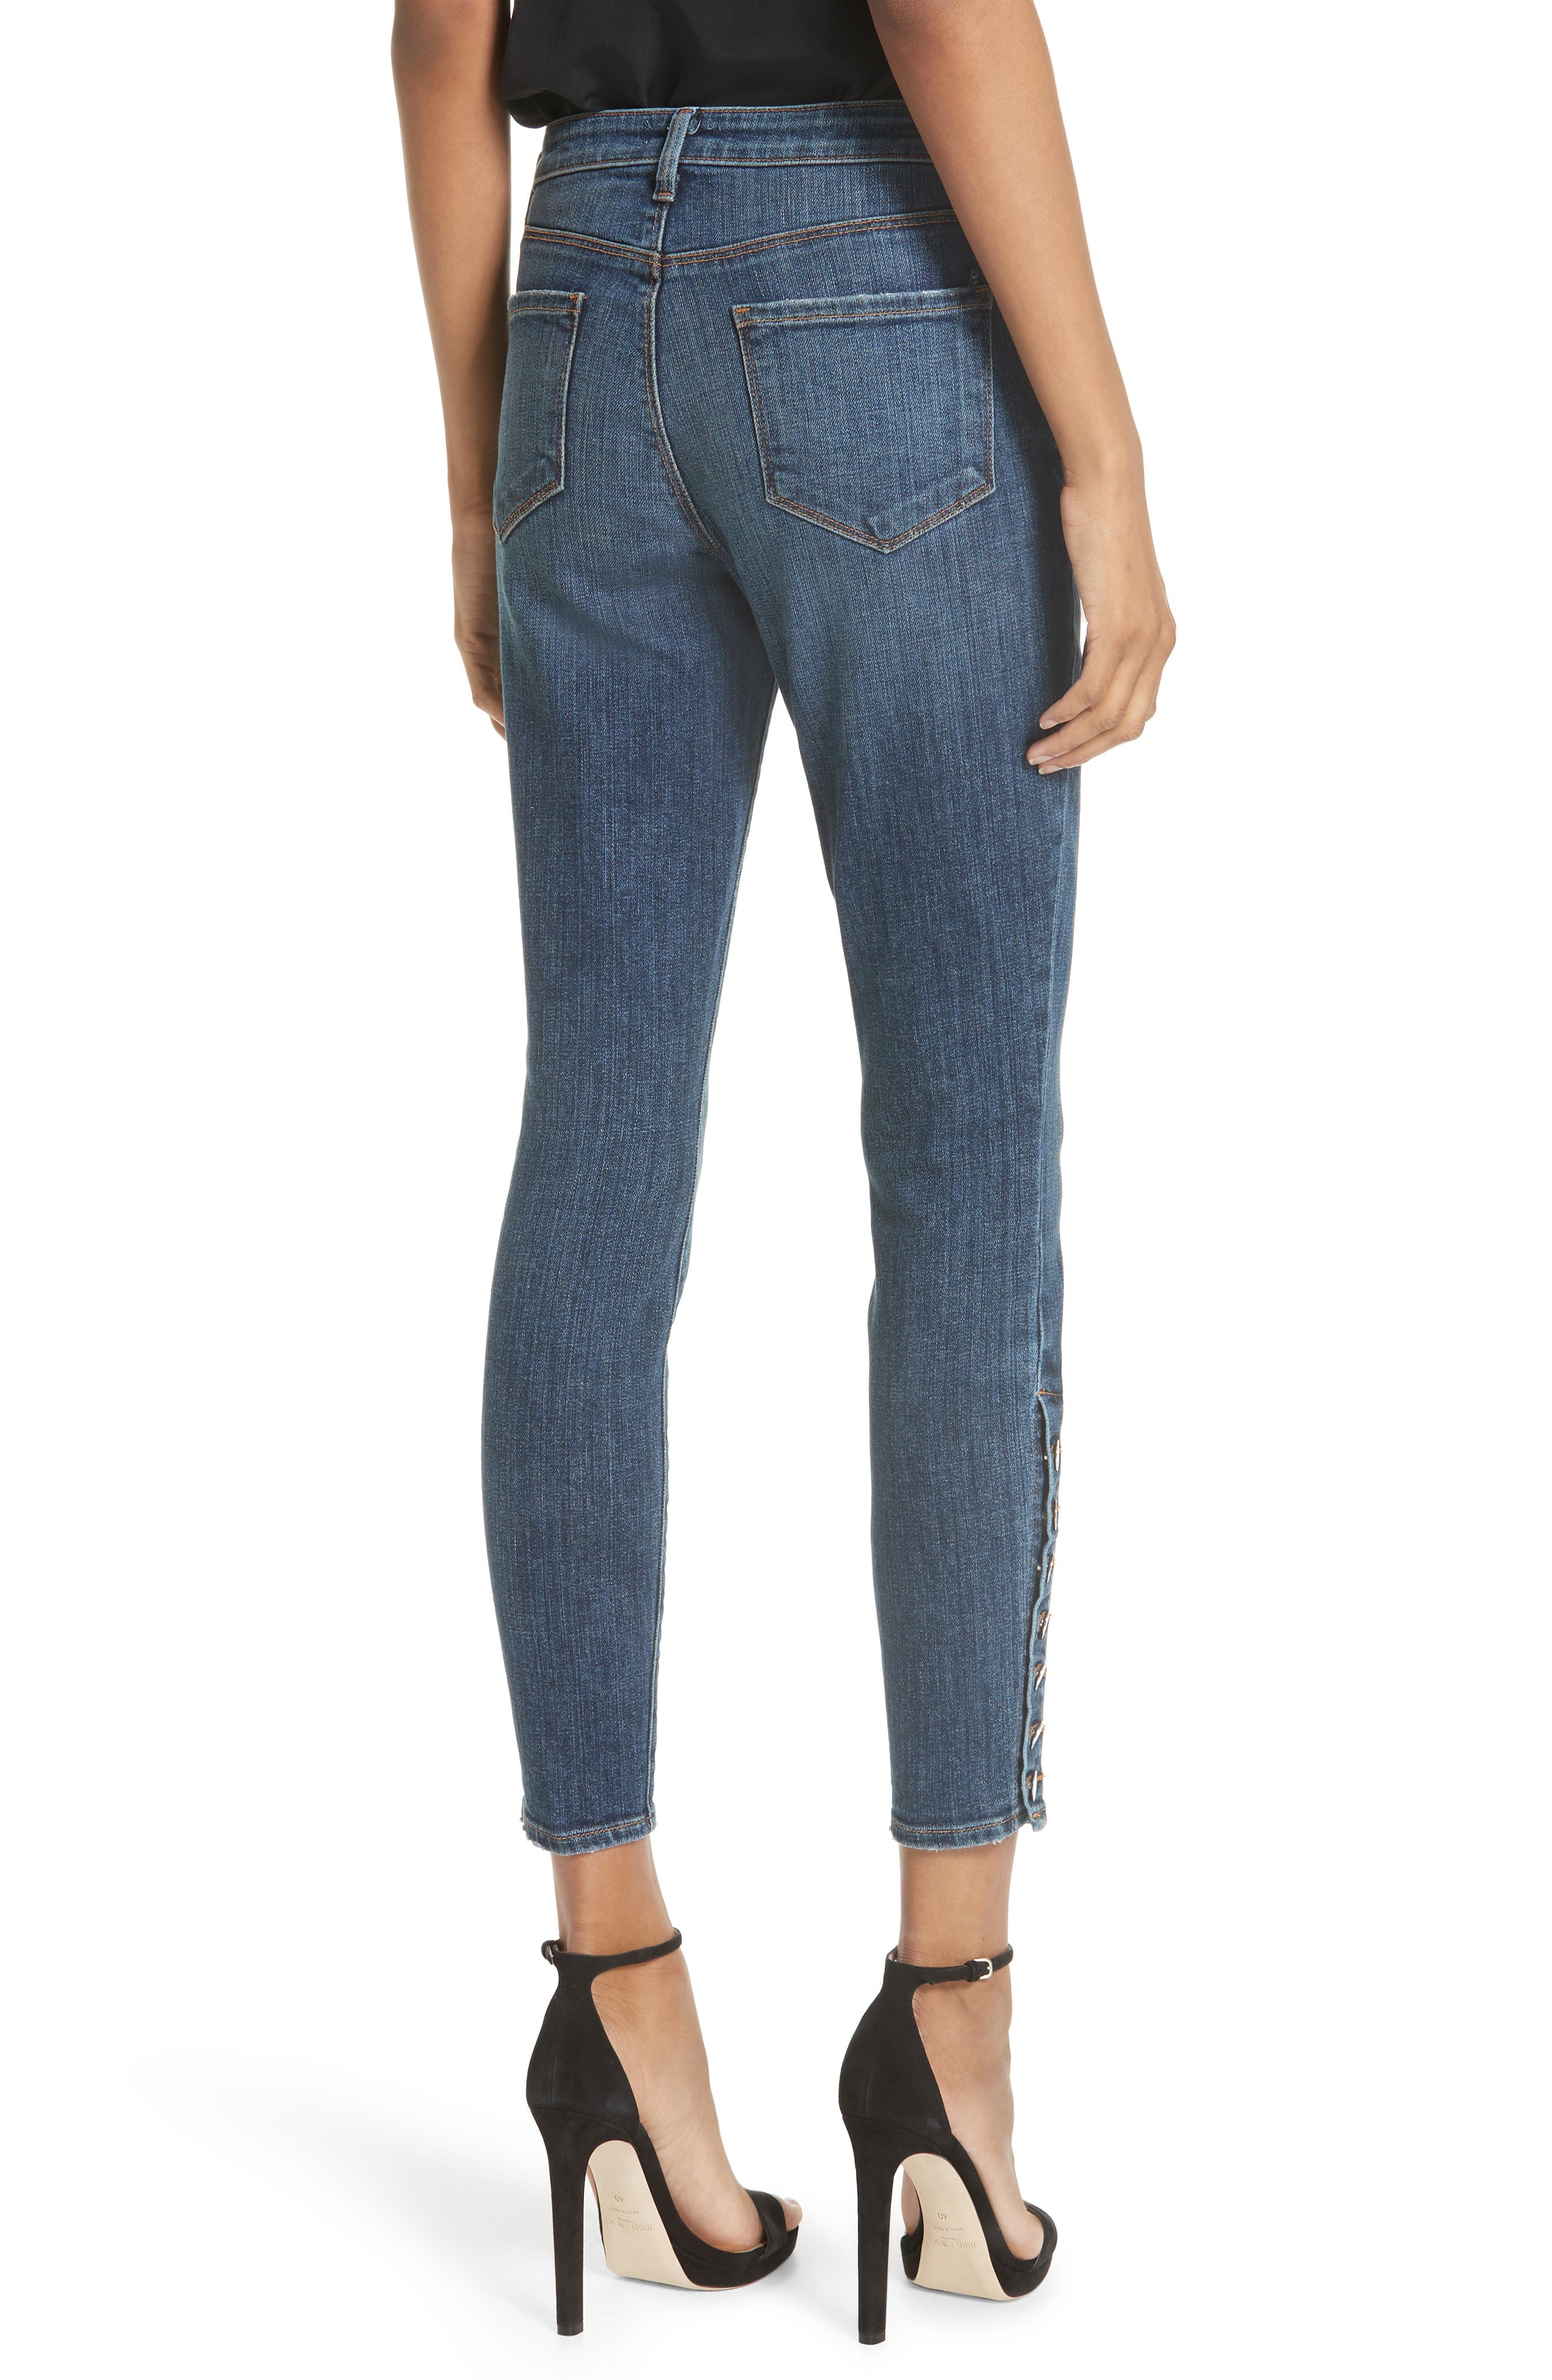 L'AGENCE, Piper Button Hem Skinny Jeans, Alternate thumbnail 2, color, CLASSIC VINTAGE